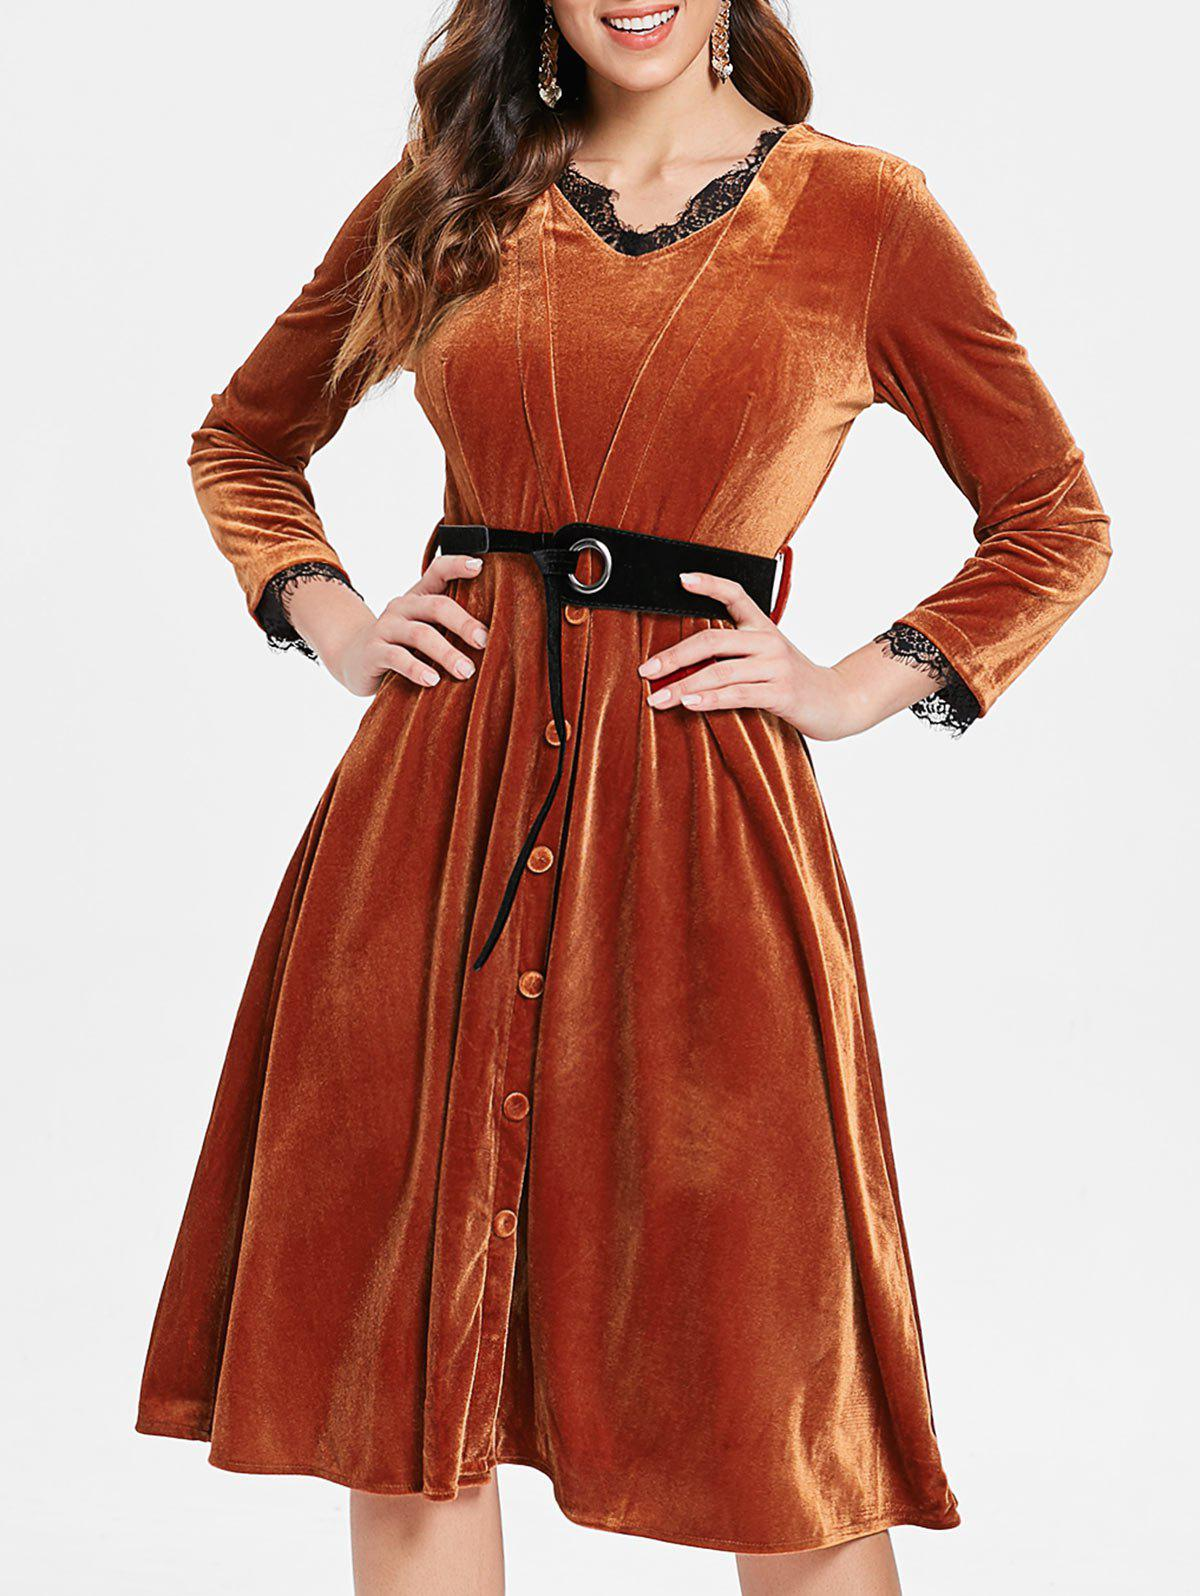 Lace Trim Long Sleeve Velvet Flare Dress - BROWN XL